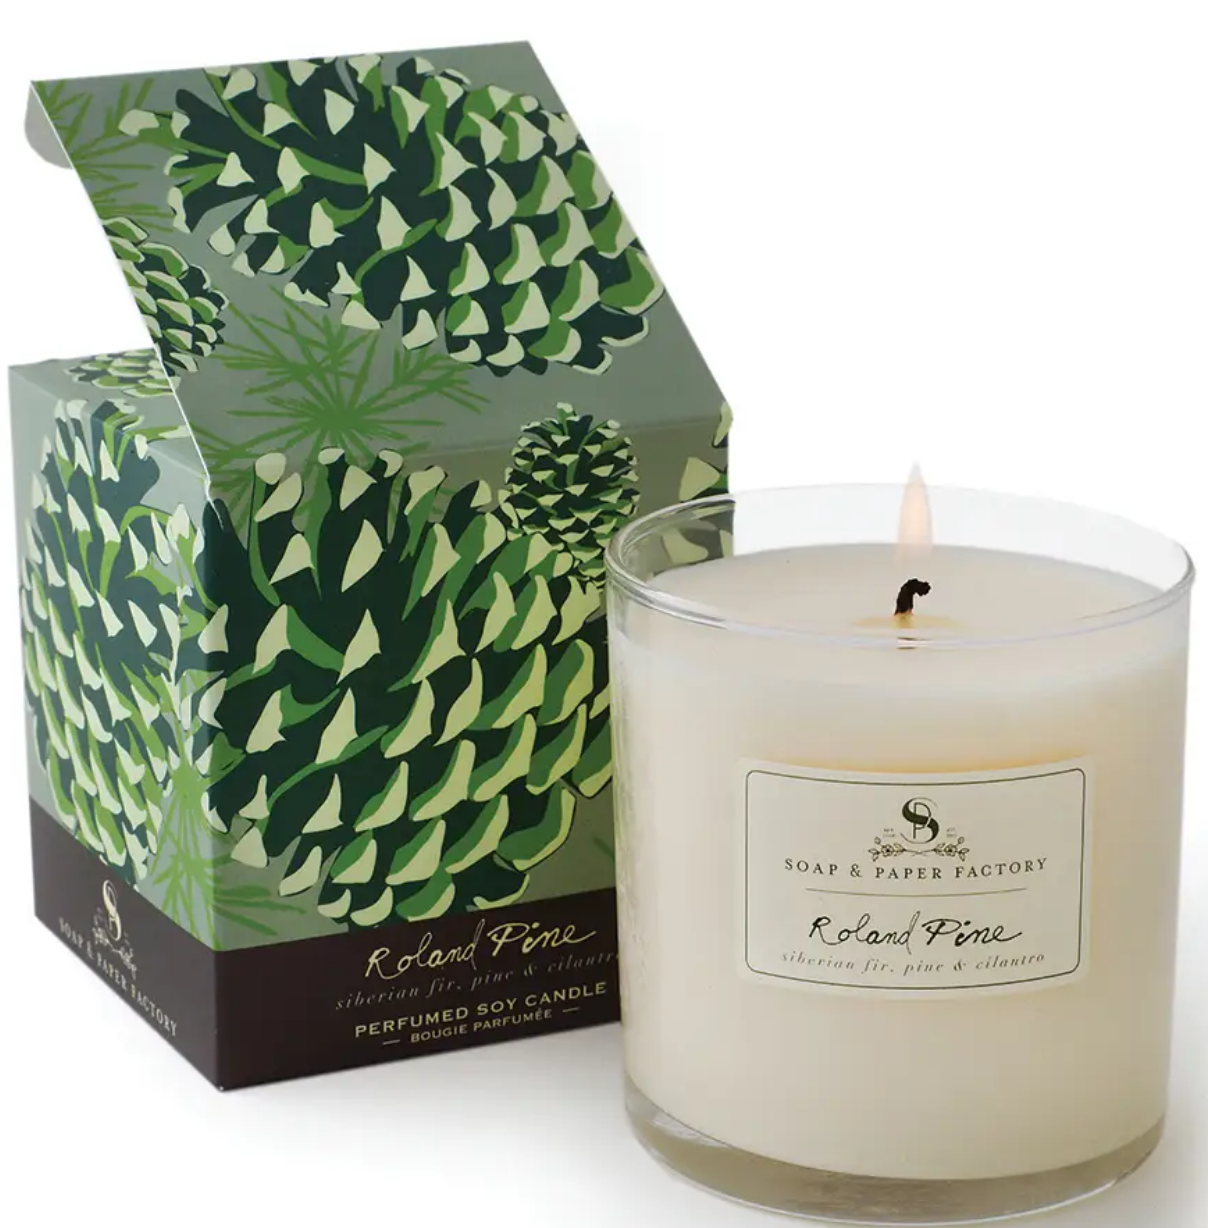 Soap & Paper Factory 9.5 oz Roland Pine Single-Wick Soy Candle